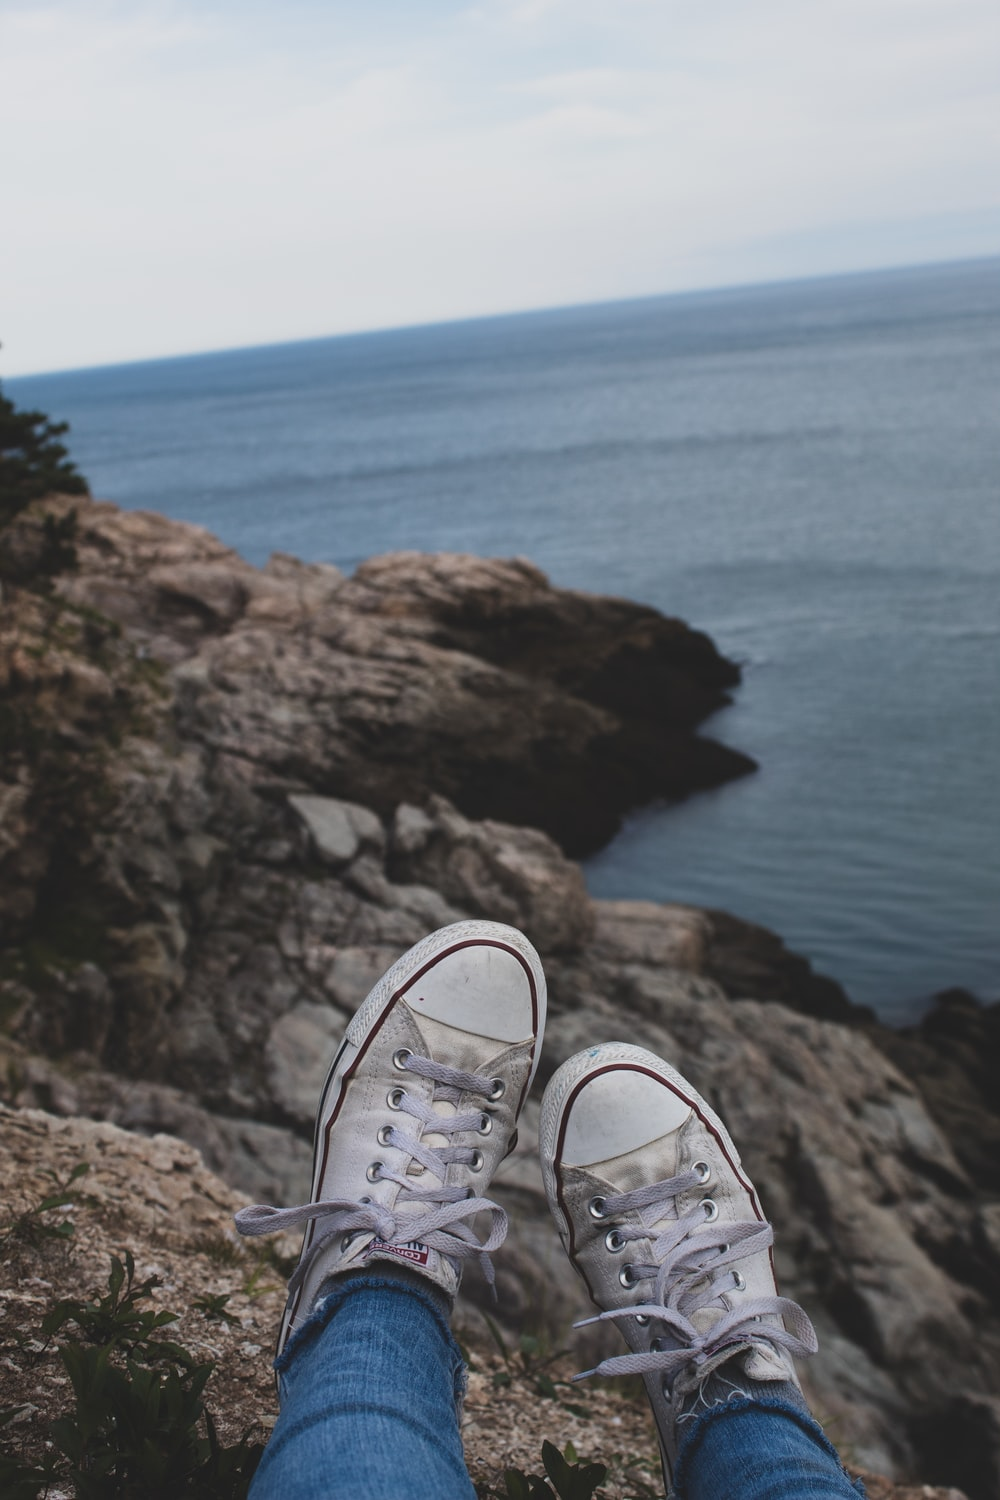 person wearing gray and white sneakers standing on brown rock formation near body of water during